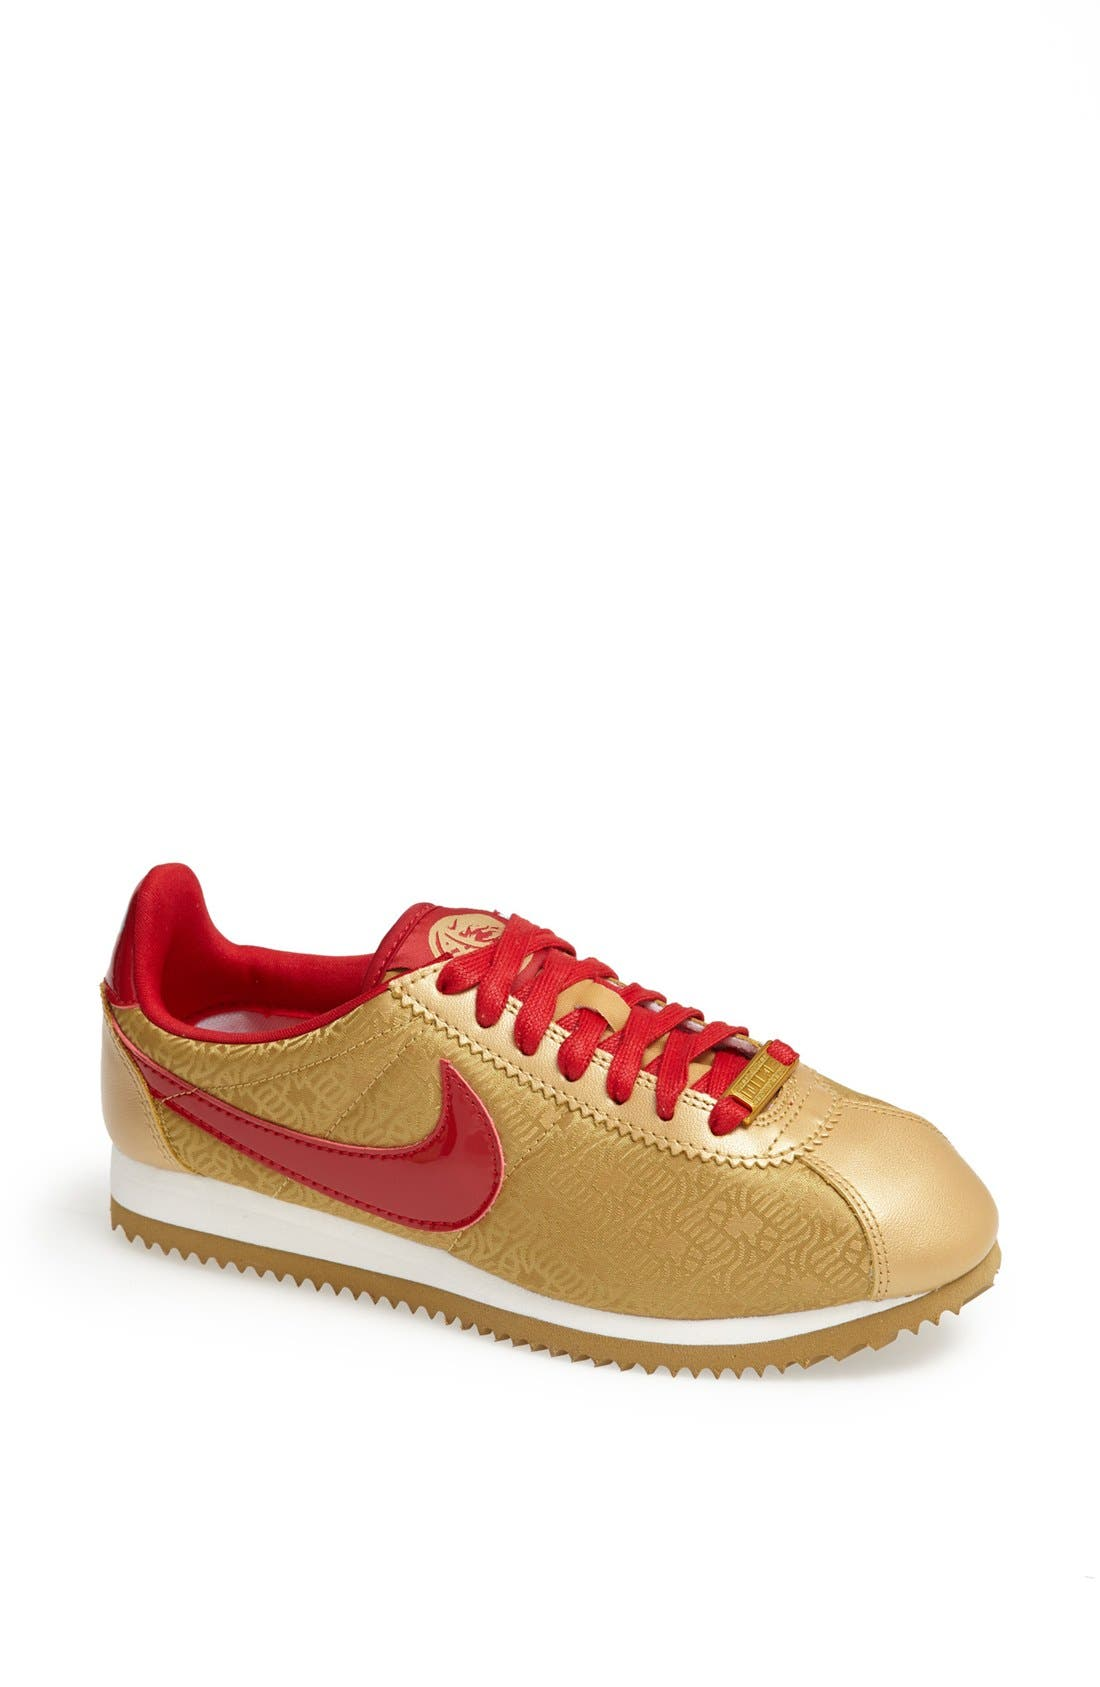 Alternate Image 1 Selected - Nike 'Classic Cortez - Year of the Horse' Sneaker (Women)